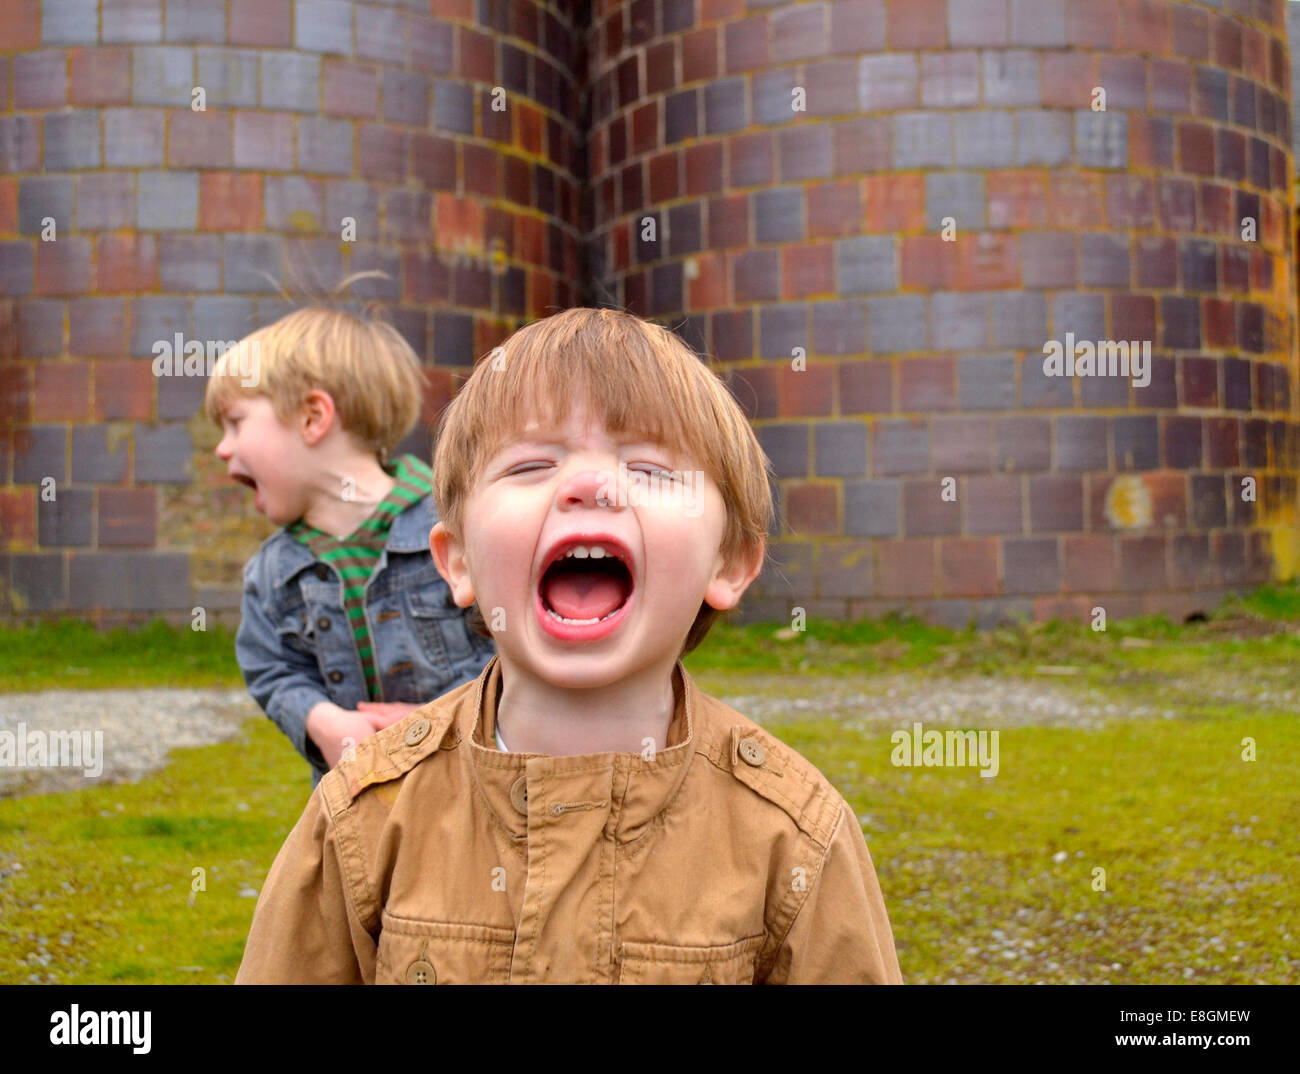 Two boys shouting (2-3 years, 4-5 years) - Stock Image